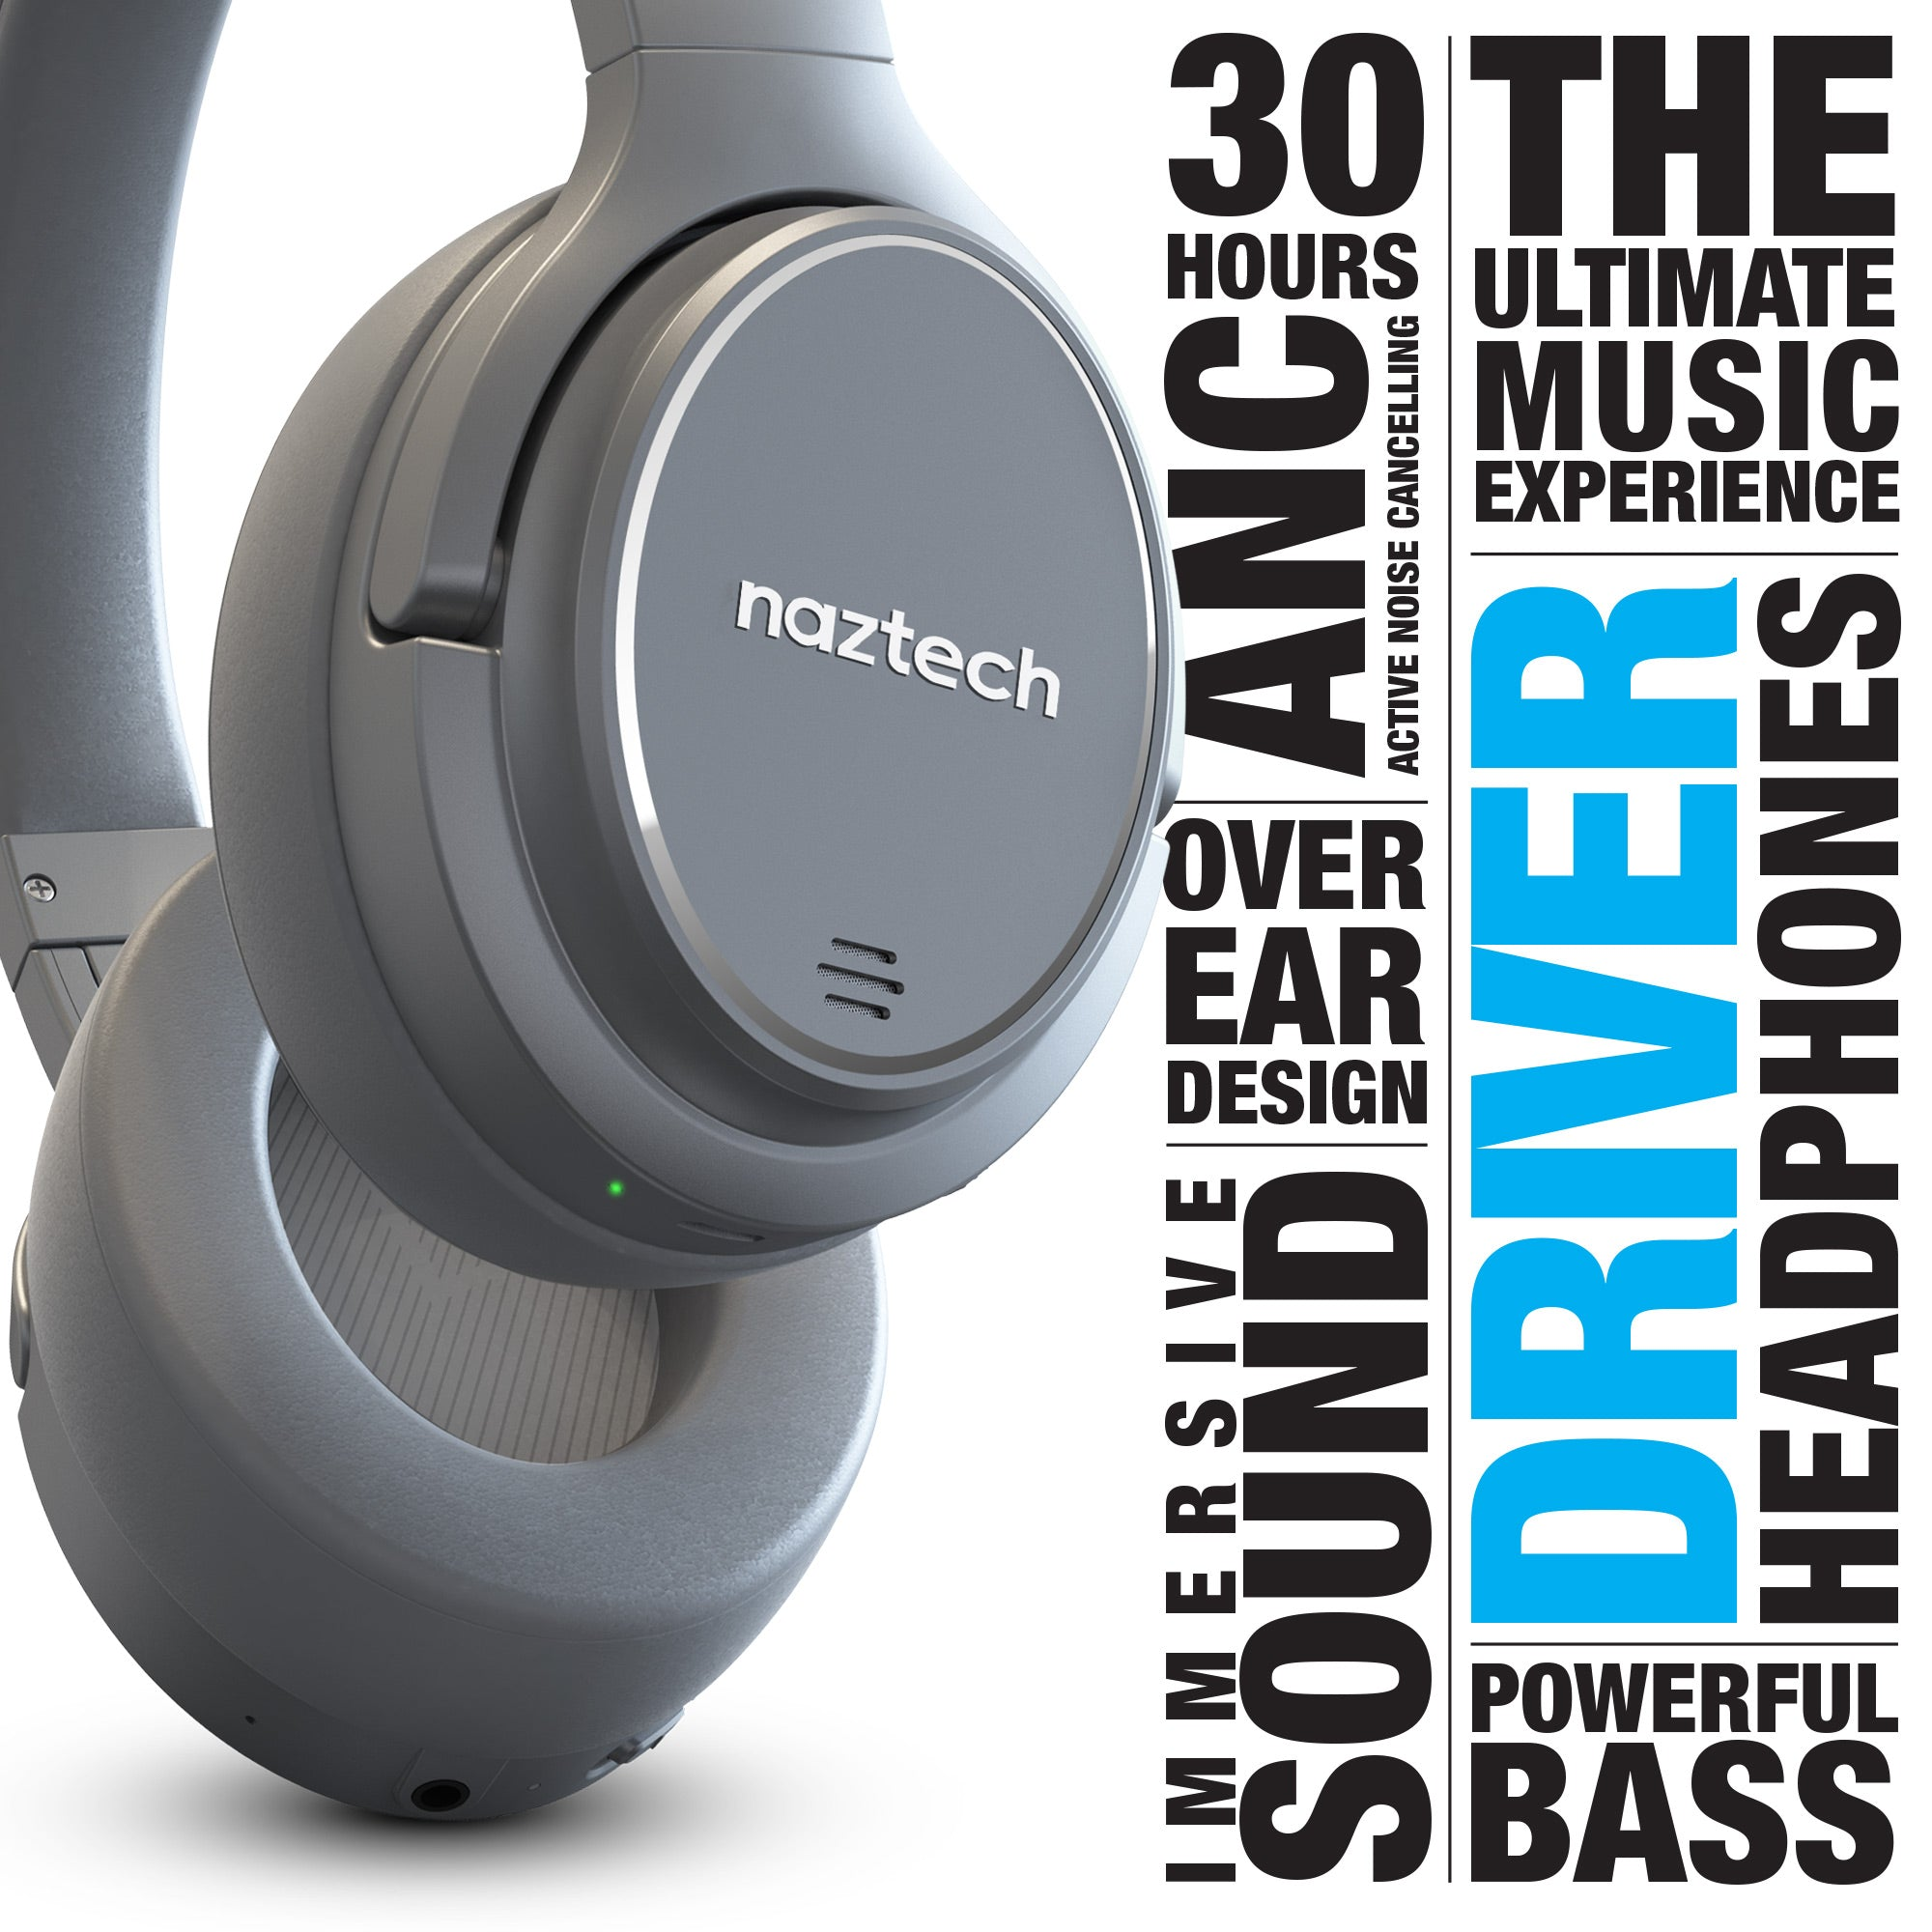 DRIVER ANC1000 Active Noise Cancelling Wireless Headphones